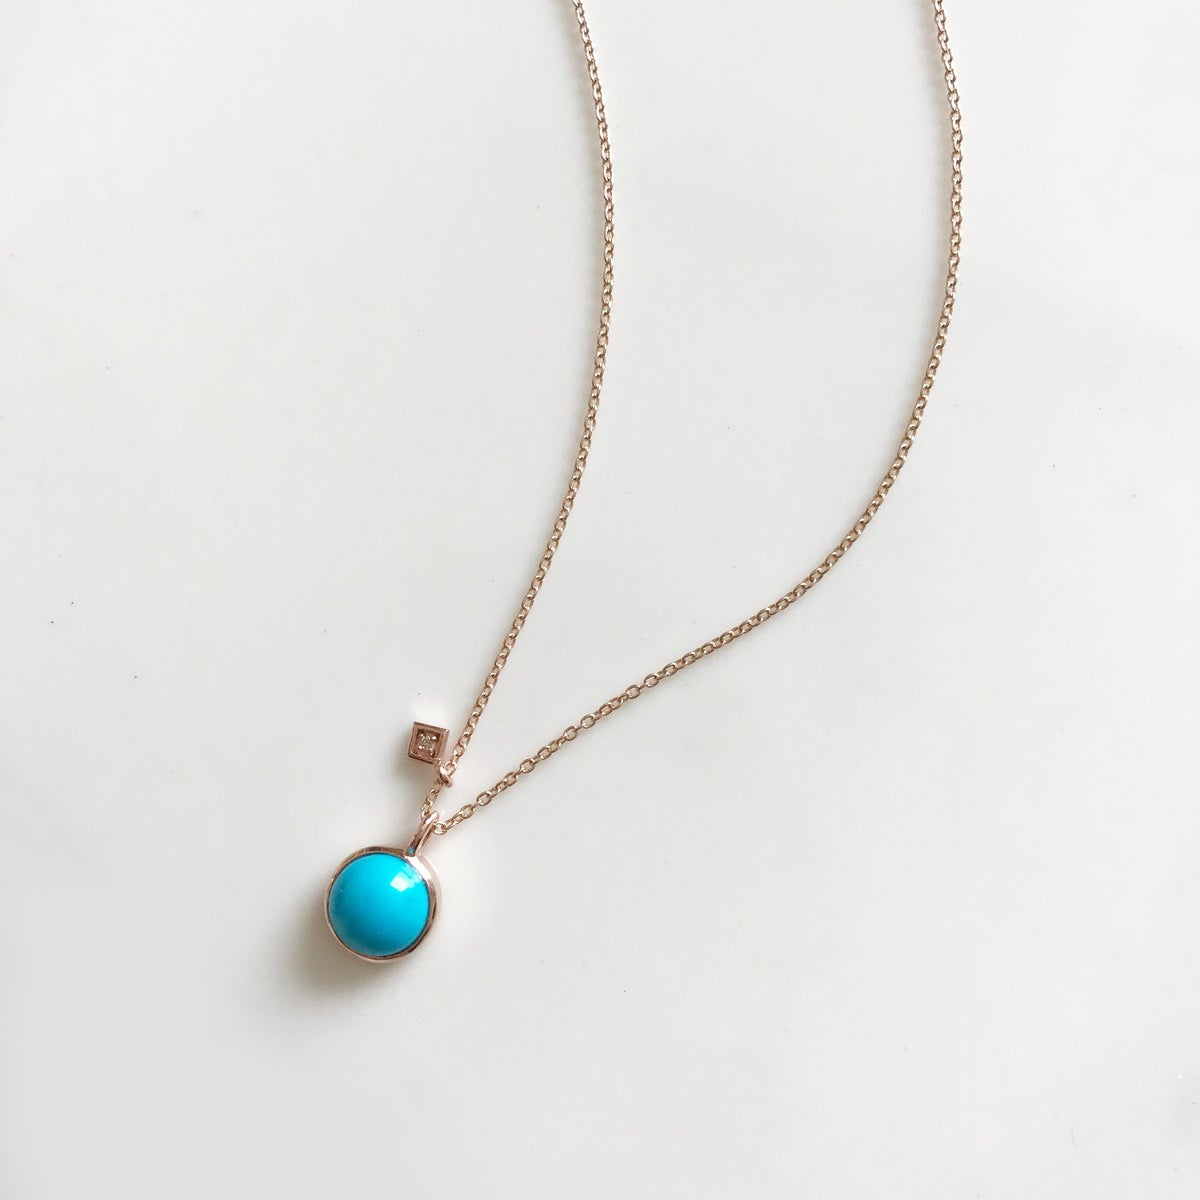 Image of Art Deco Turquoise Necklace